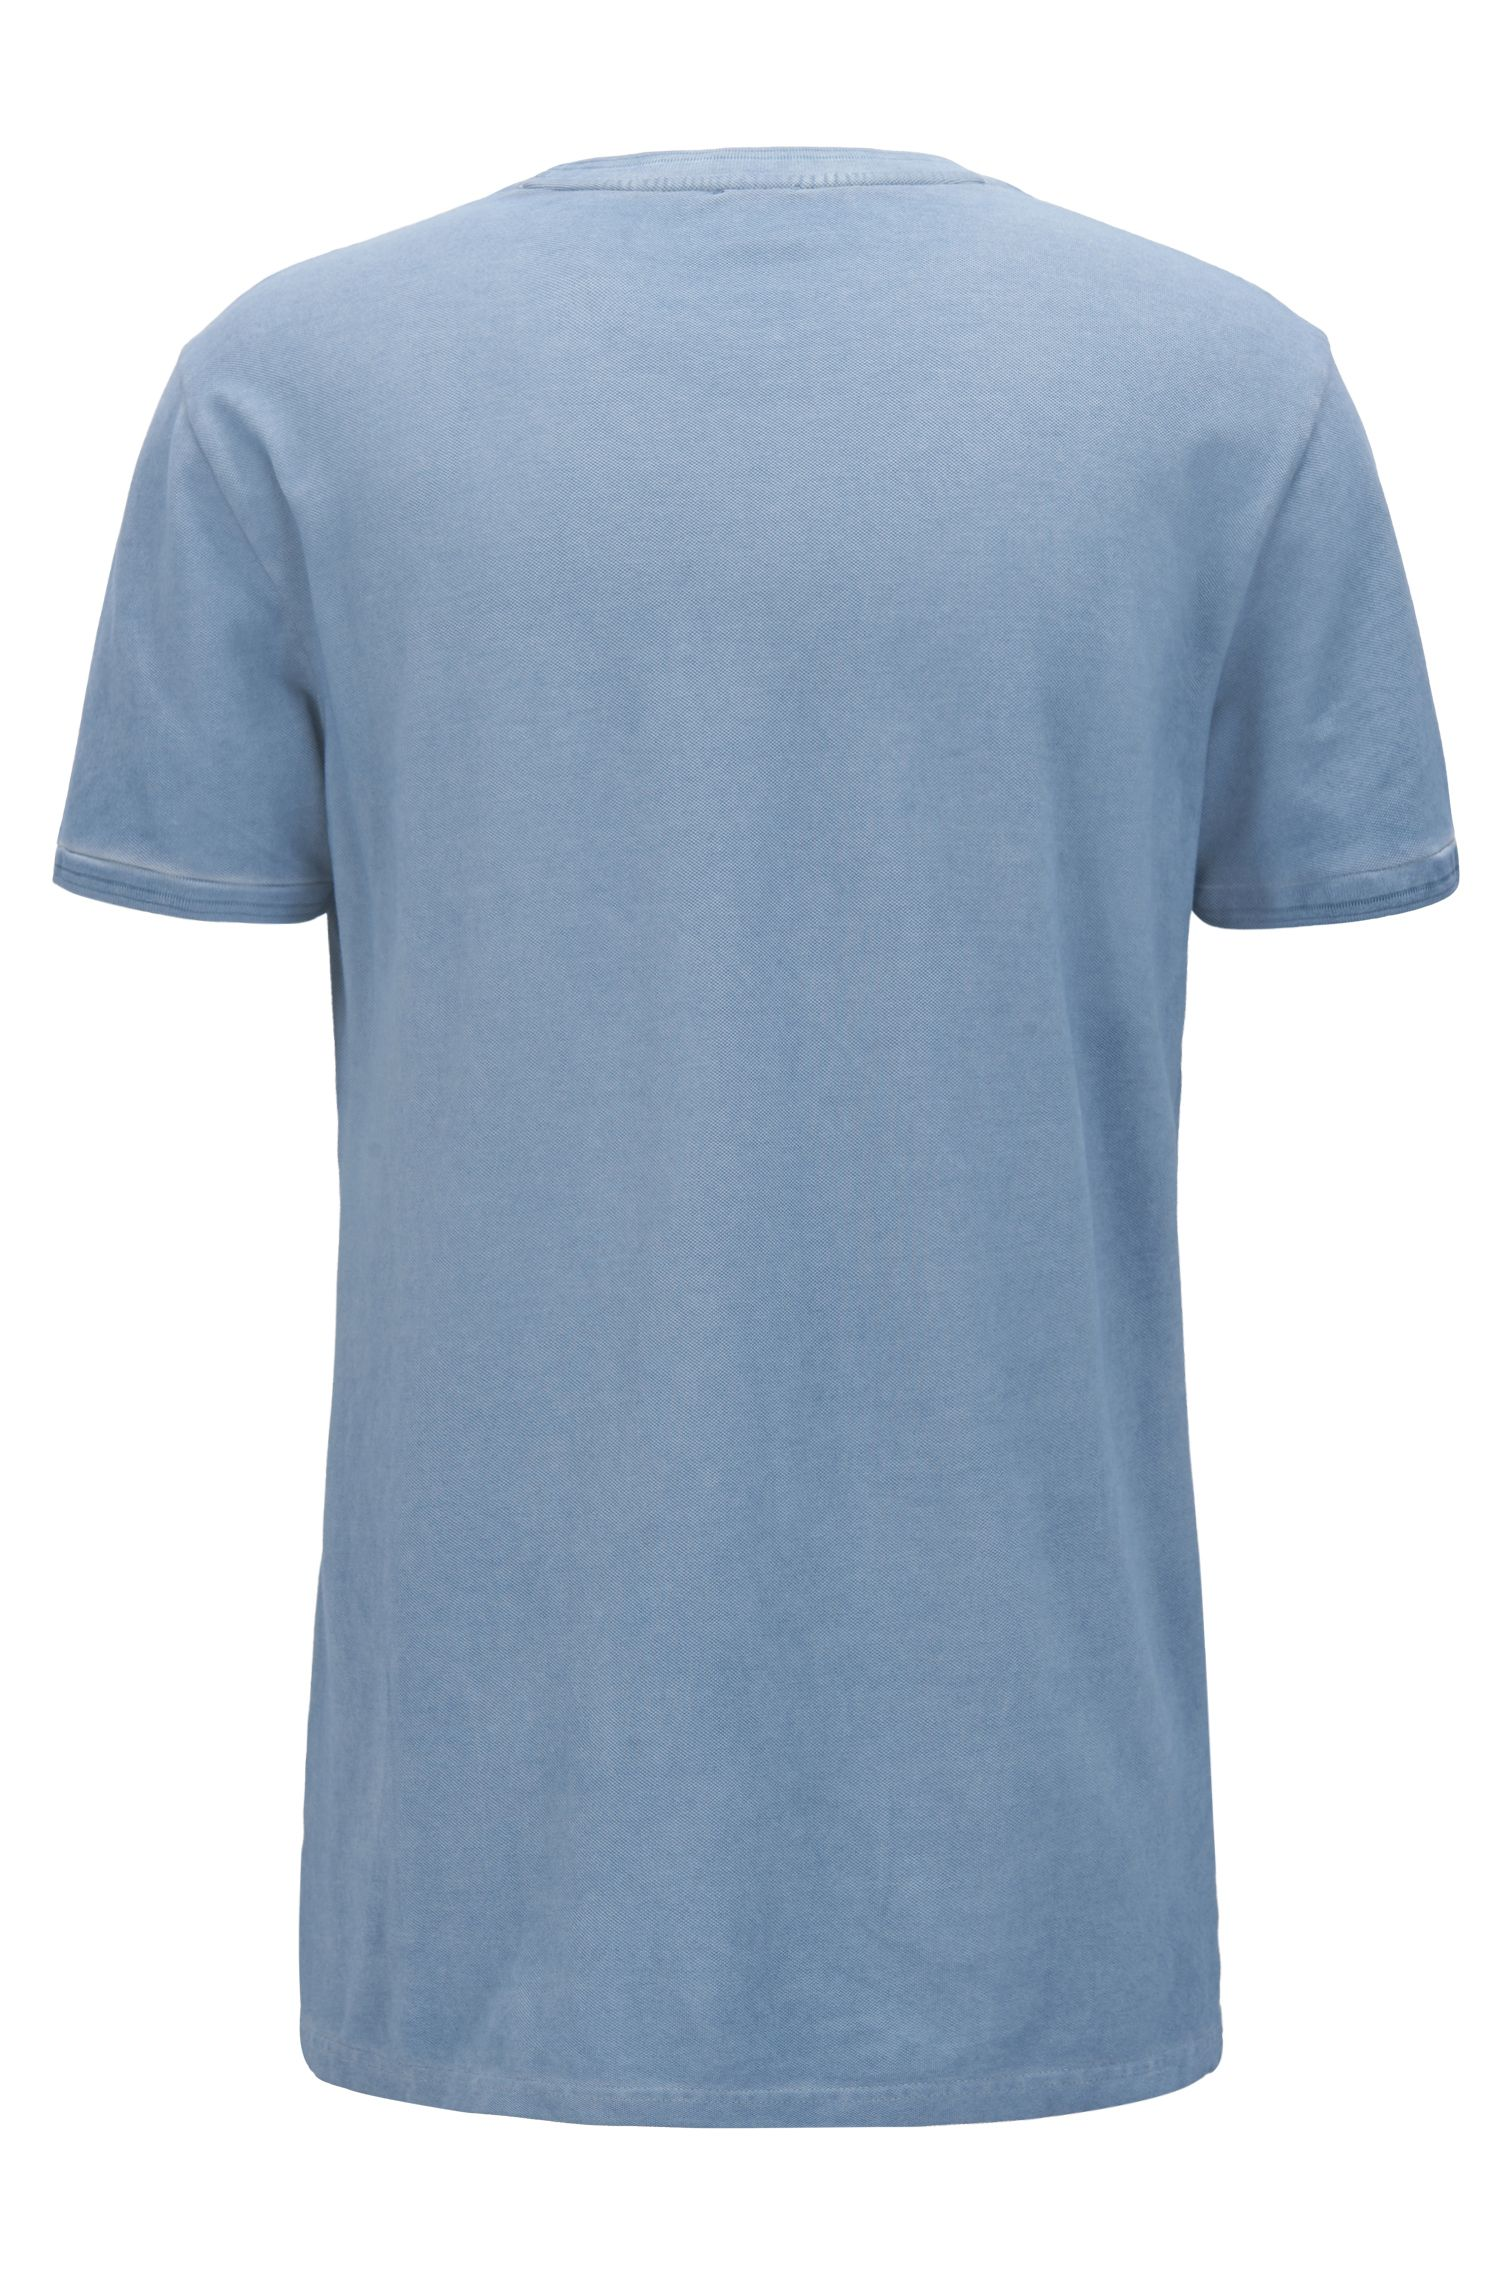 Garment-dyed T-shirt in cotton pique